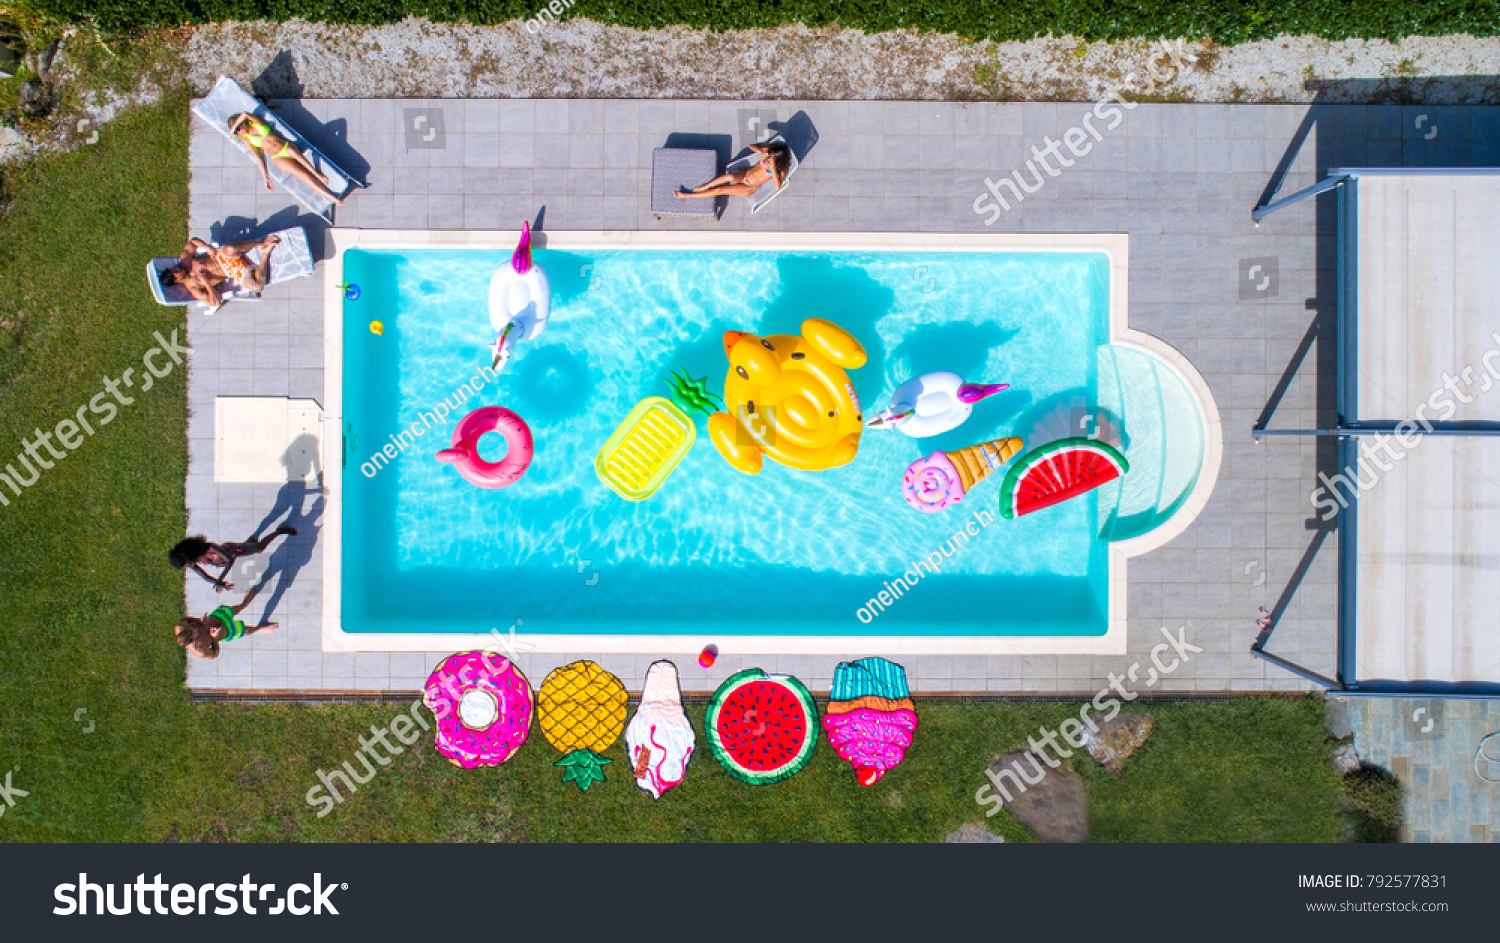 Happy People Partying In An Exclusive Swimming Pool With Animal And Fruit Shapes Mats View